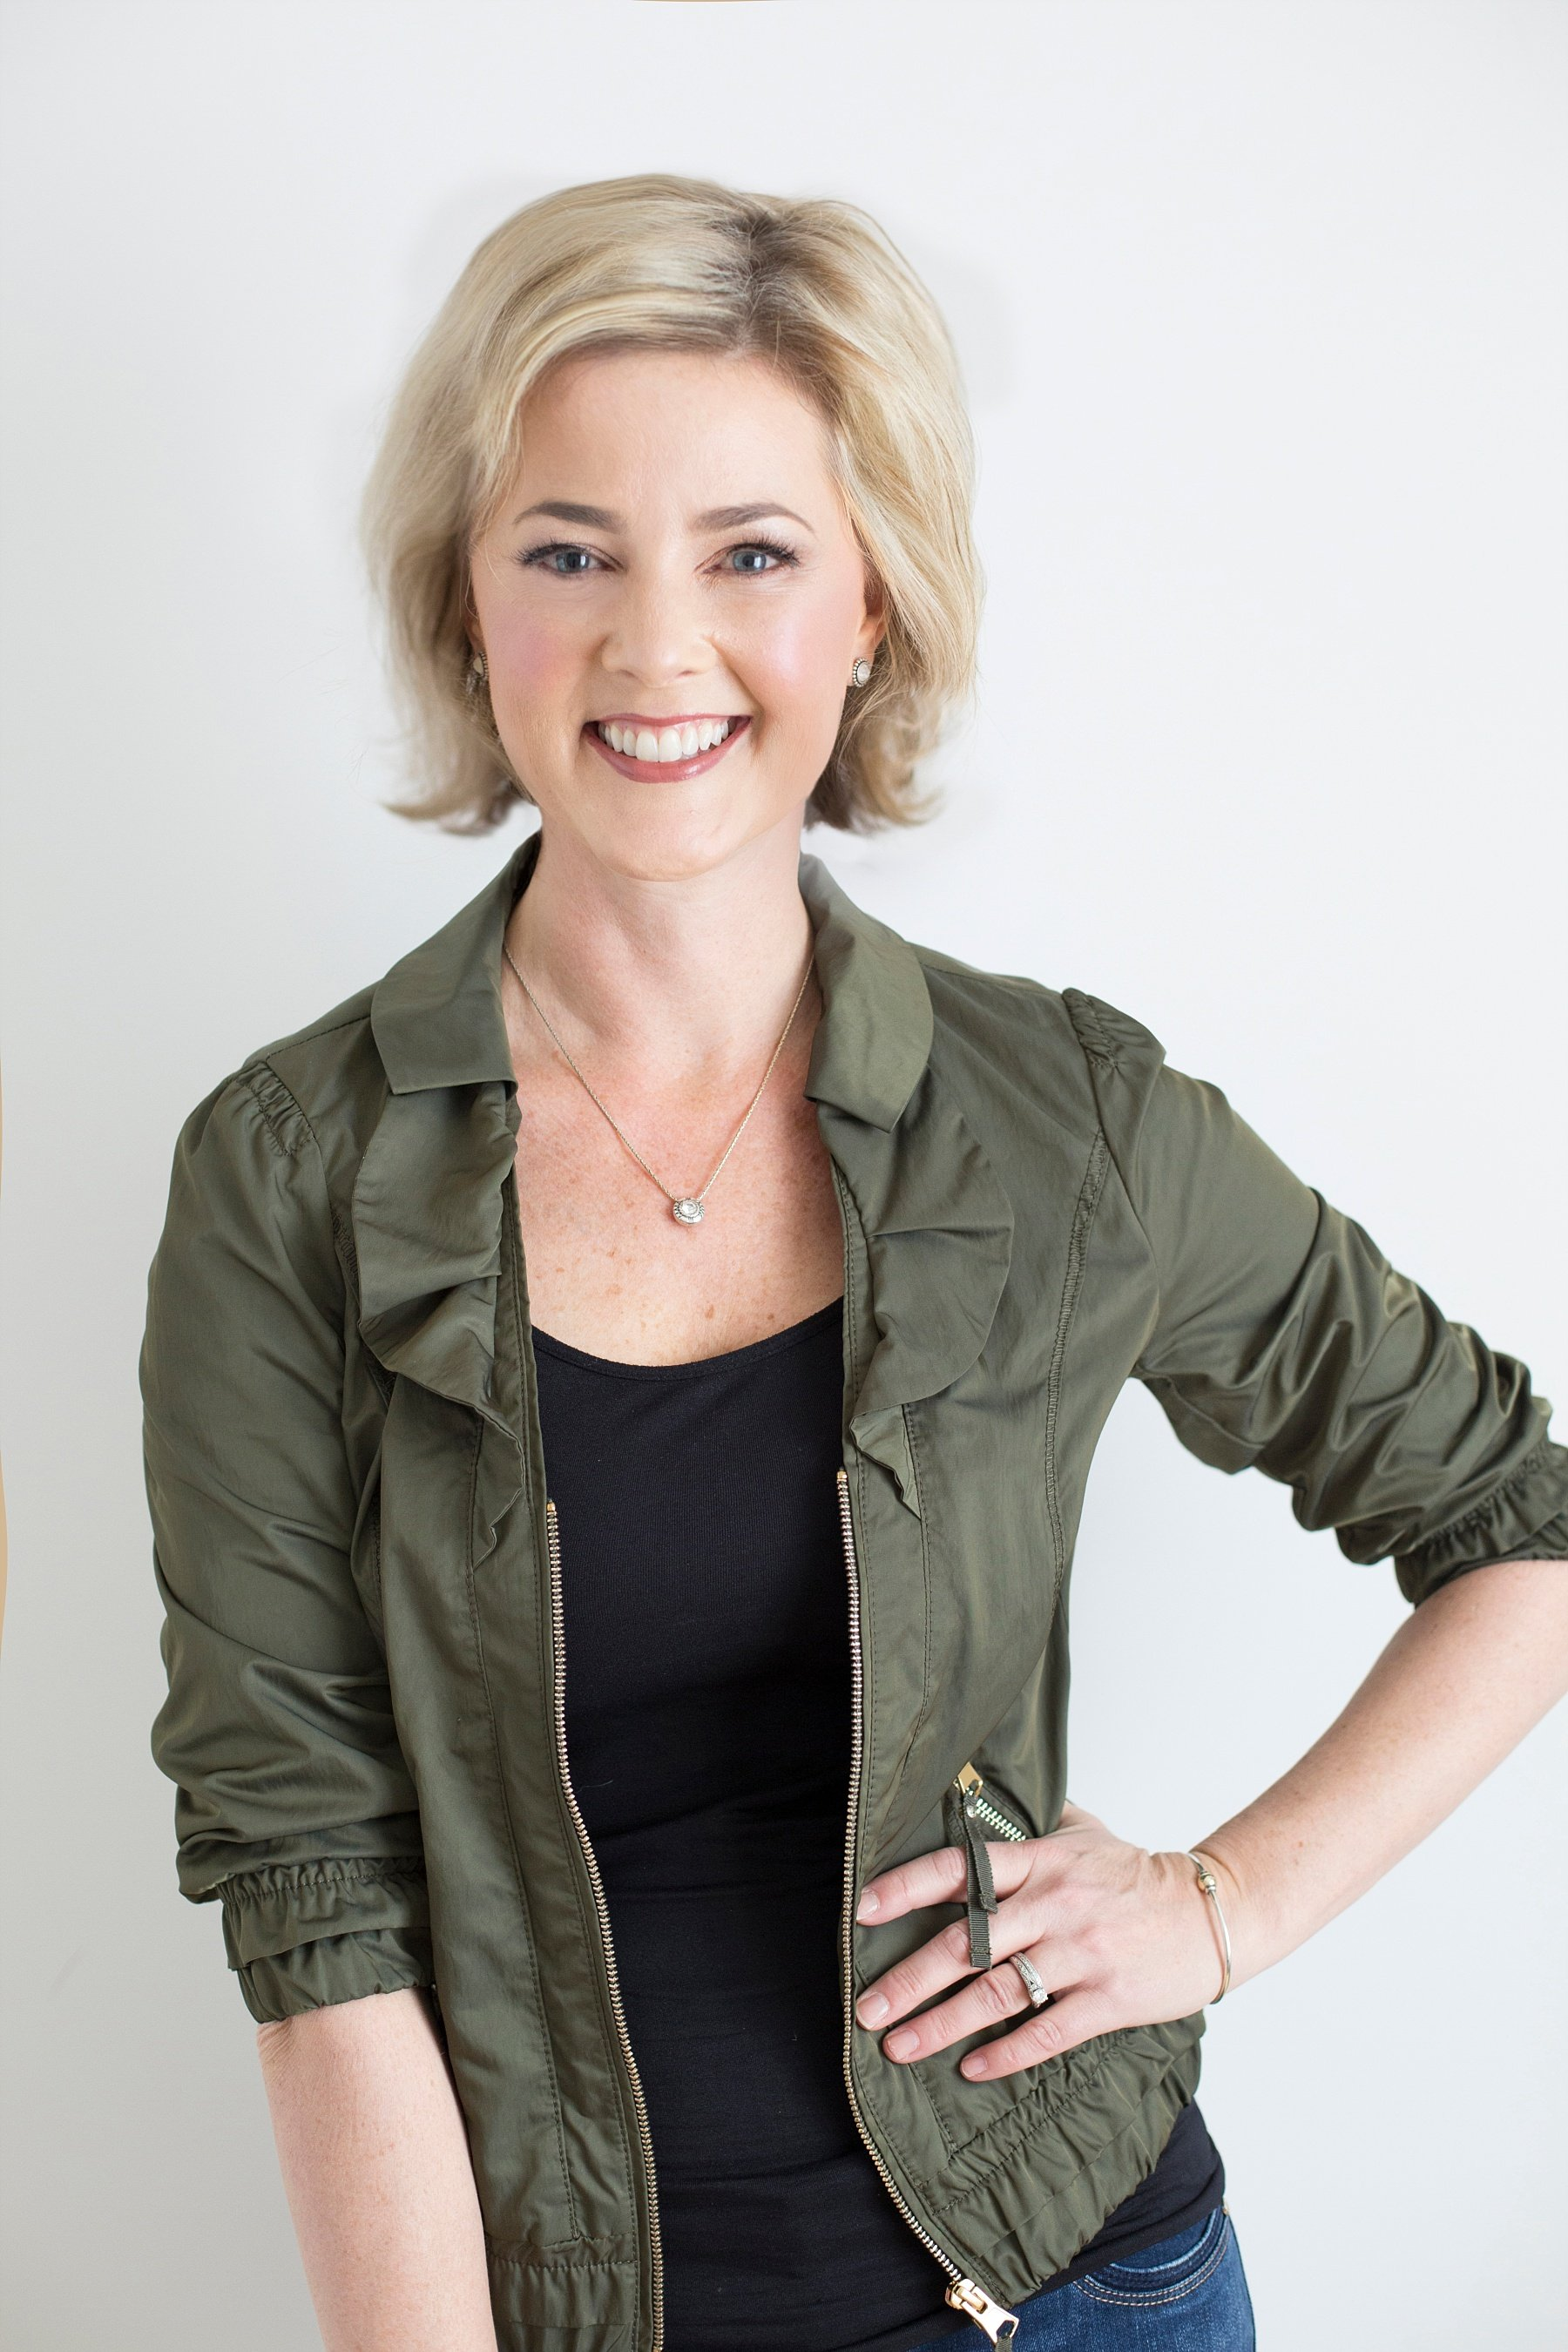 Allison Dunn in an army green jacket posing with her arm on her hip.